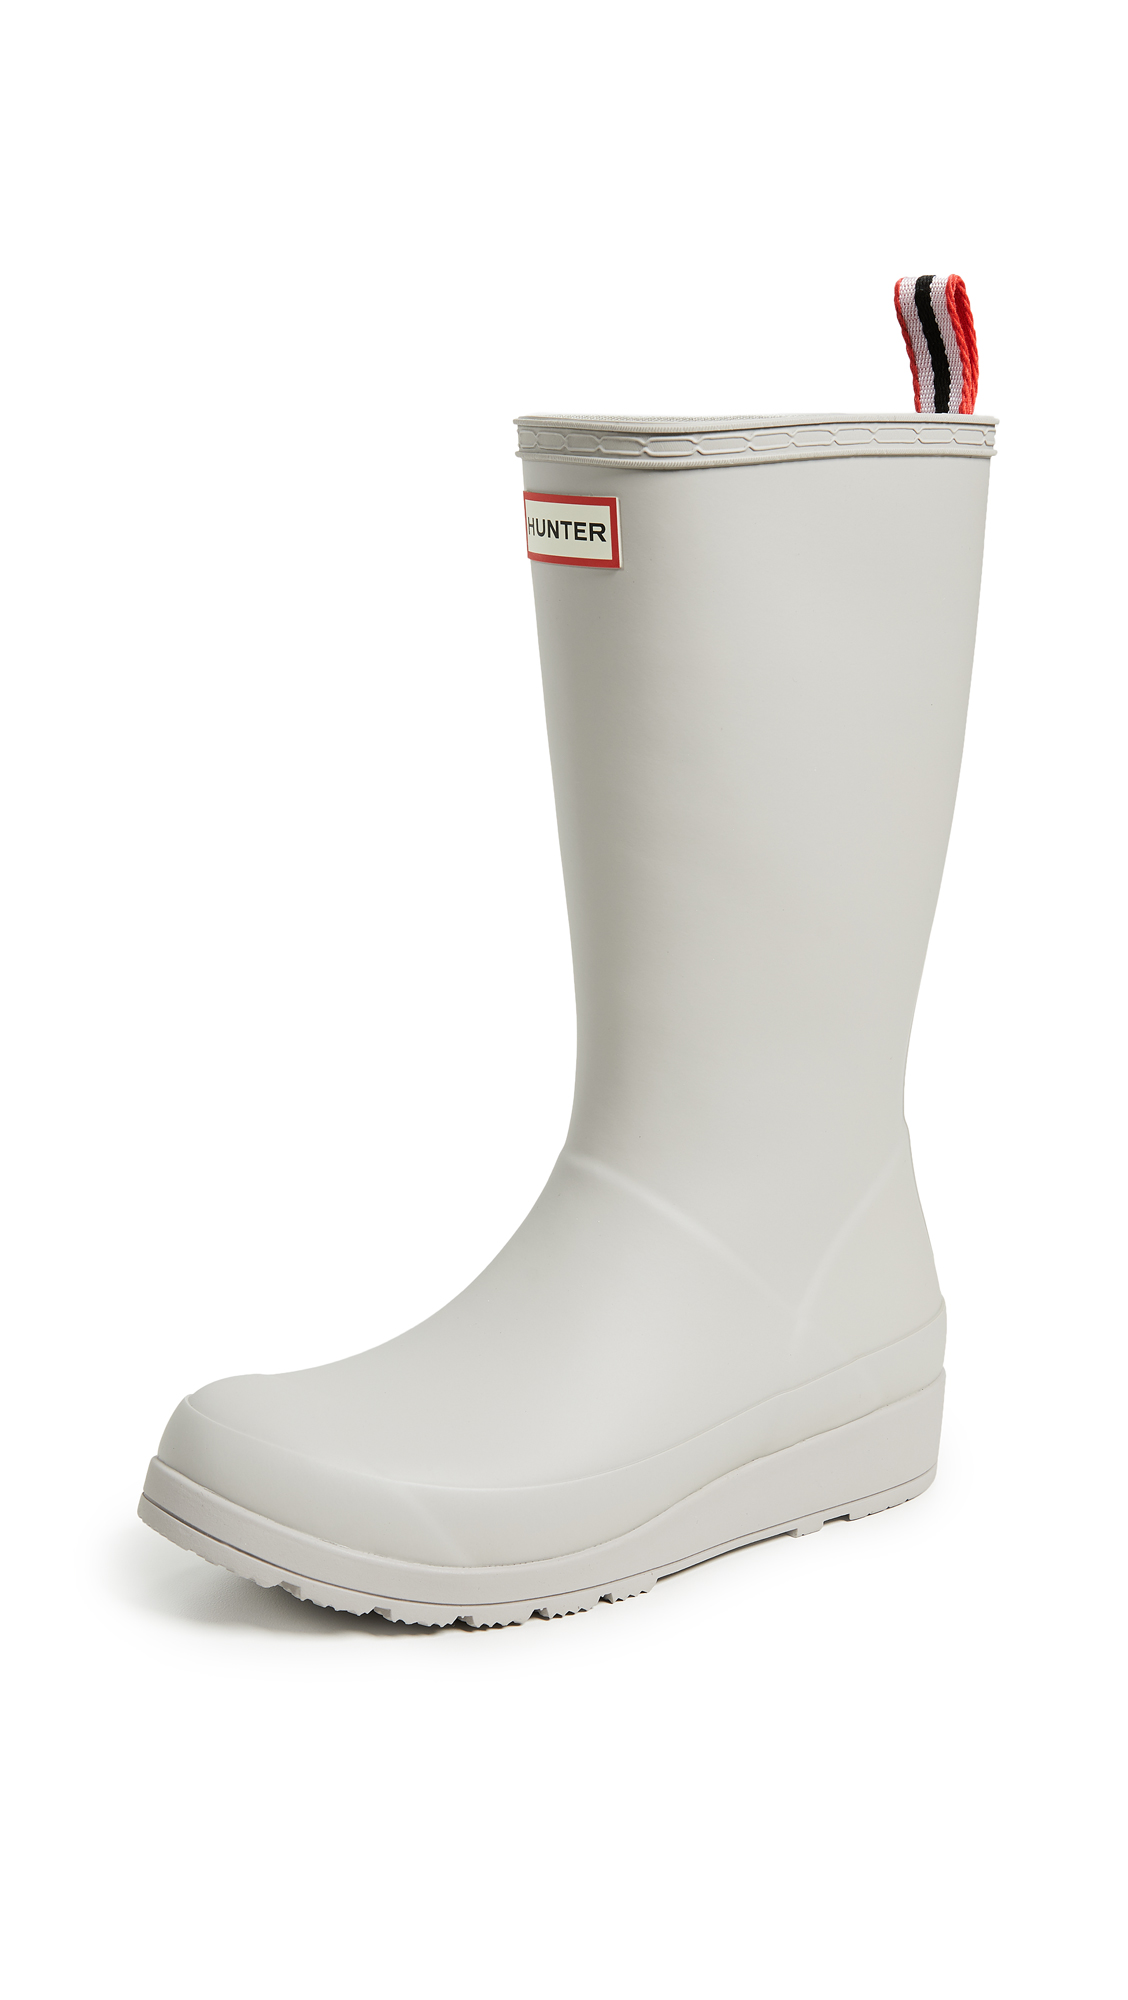 Hunter Boots Original Play Tall Boots - Zinc